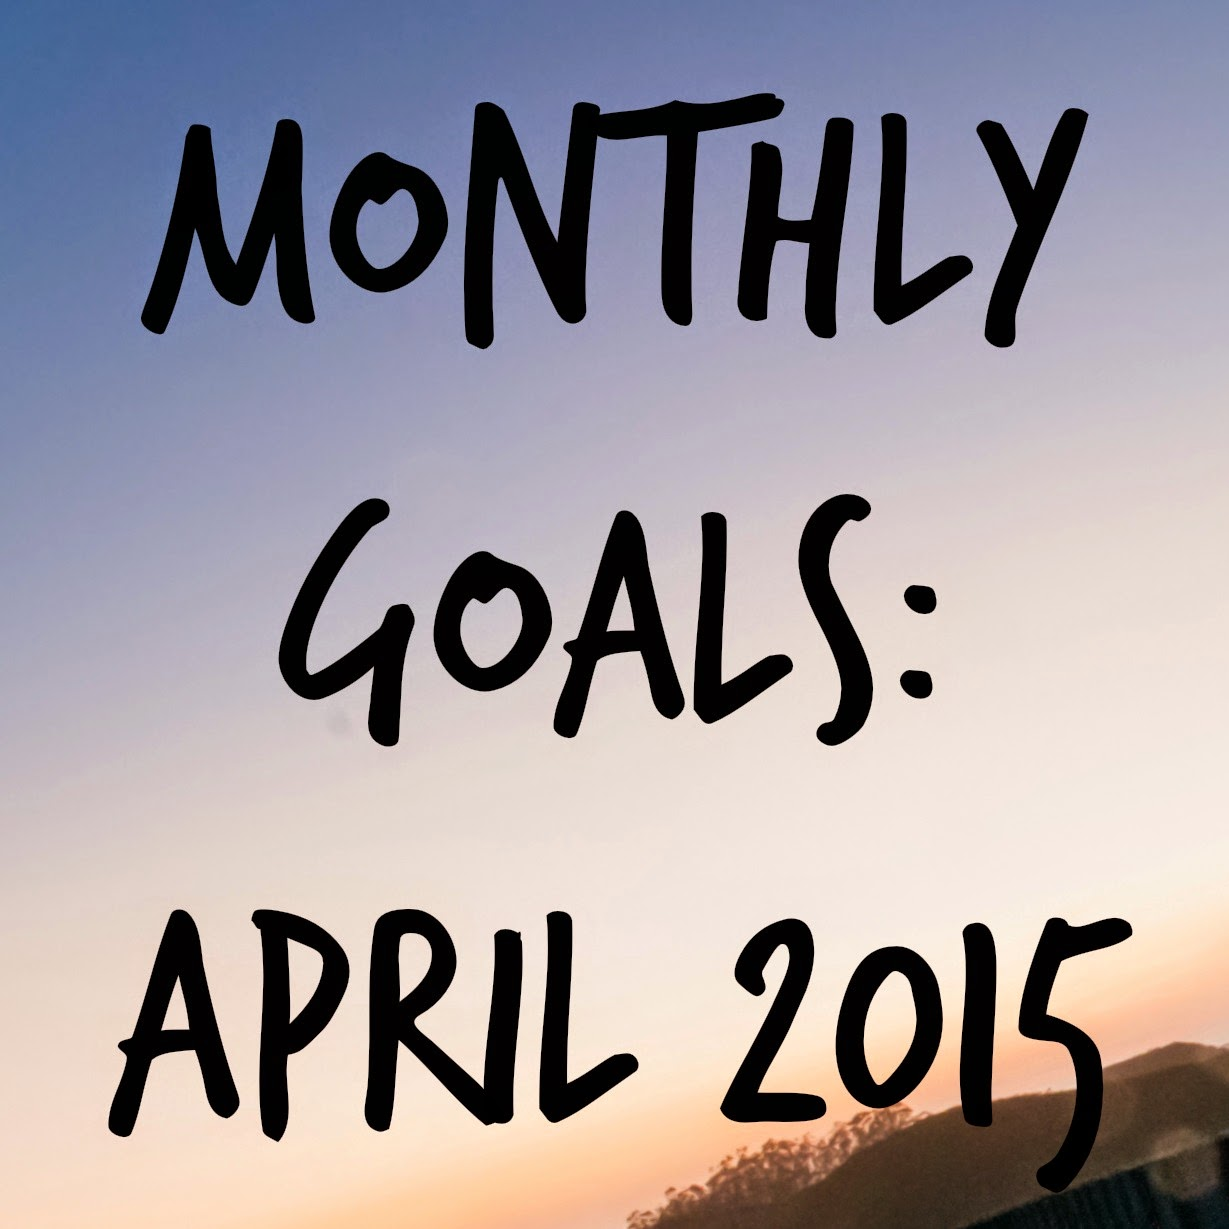 Monthly Goals : April 2015